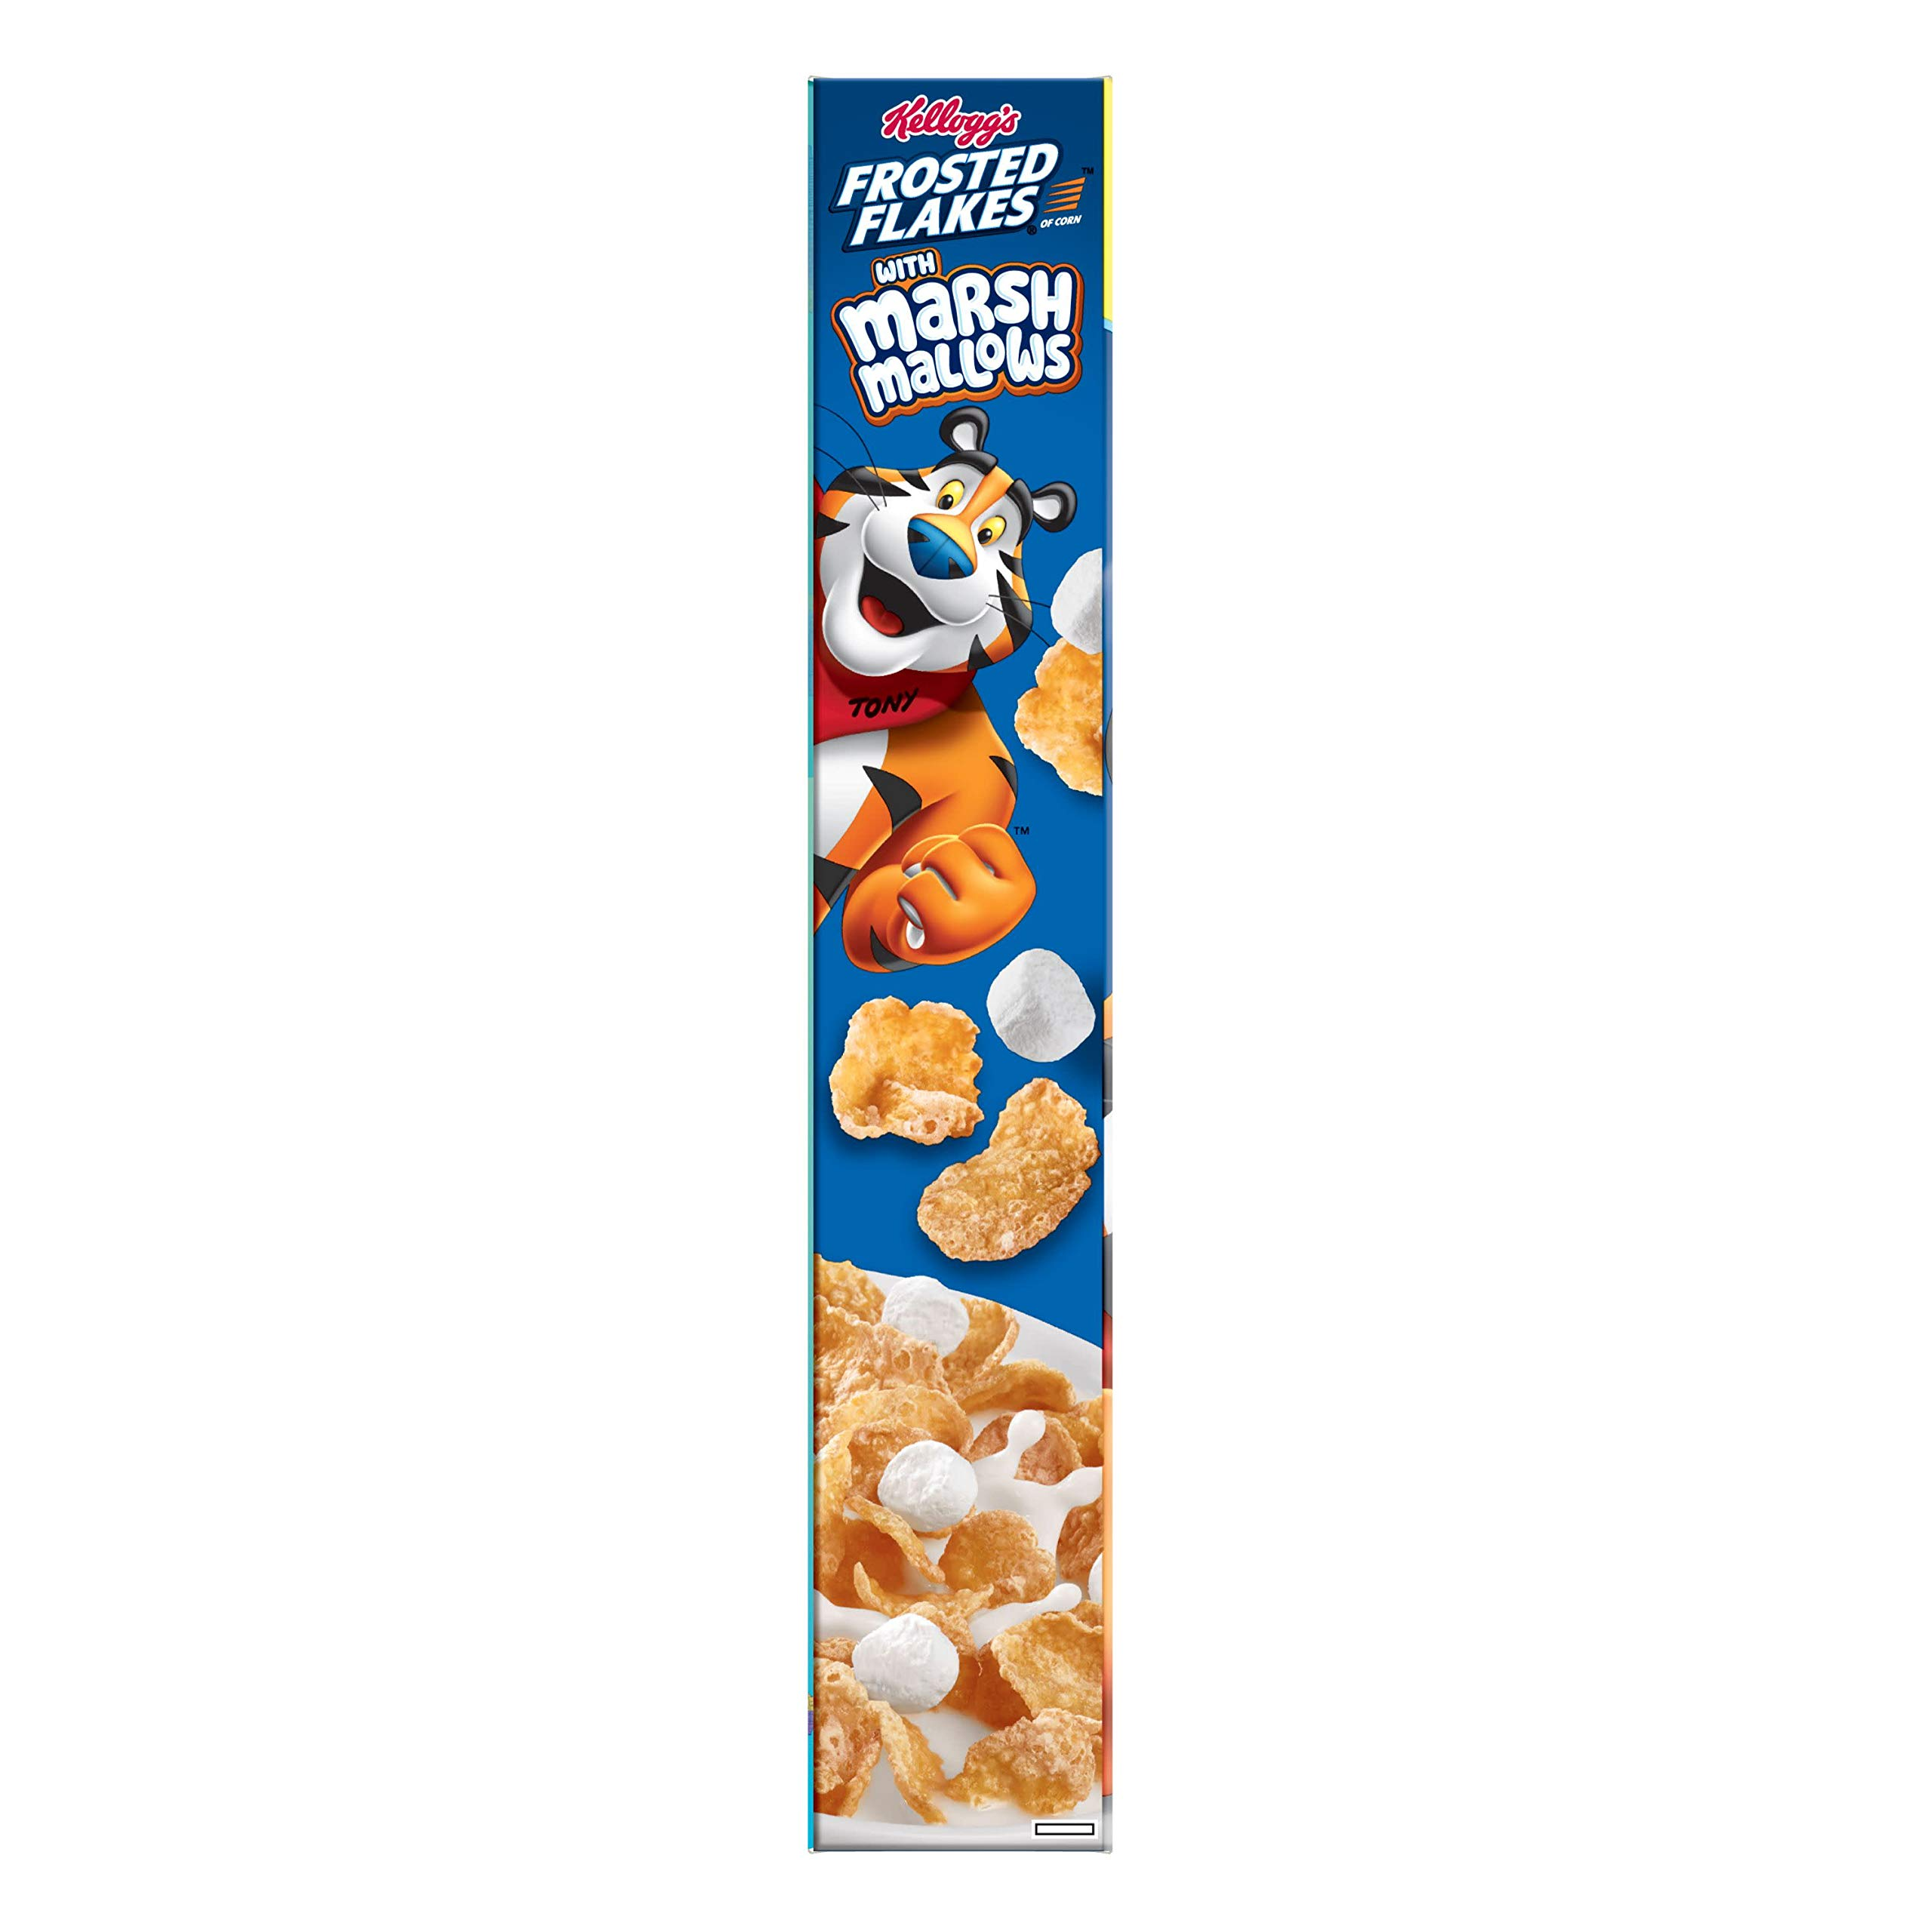 Kellogg's Breakfast Cereal, Frosted Flakes with Marshmallow, 13.6 oz Box(Pack of 12) by Kellogg's (Image #10)